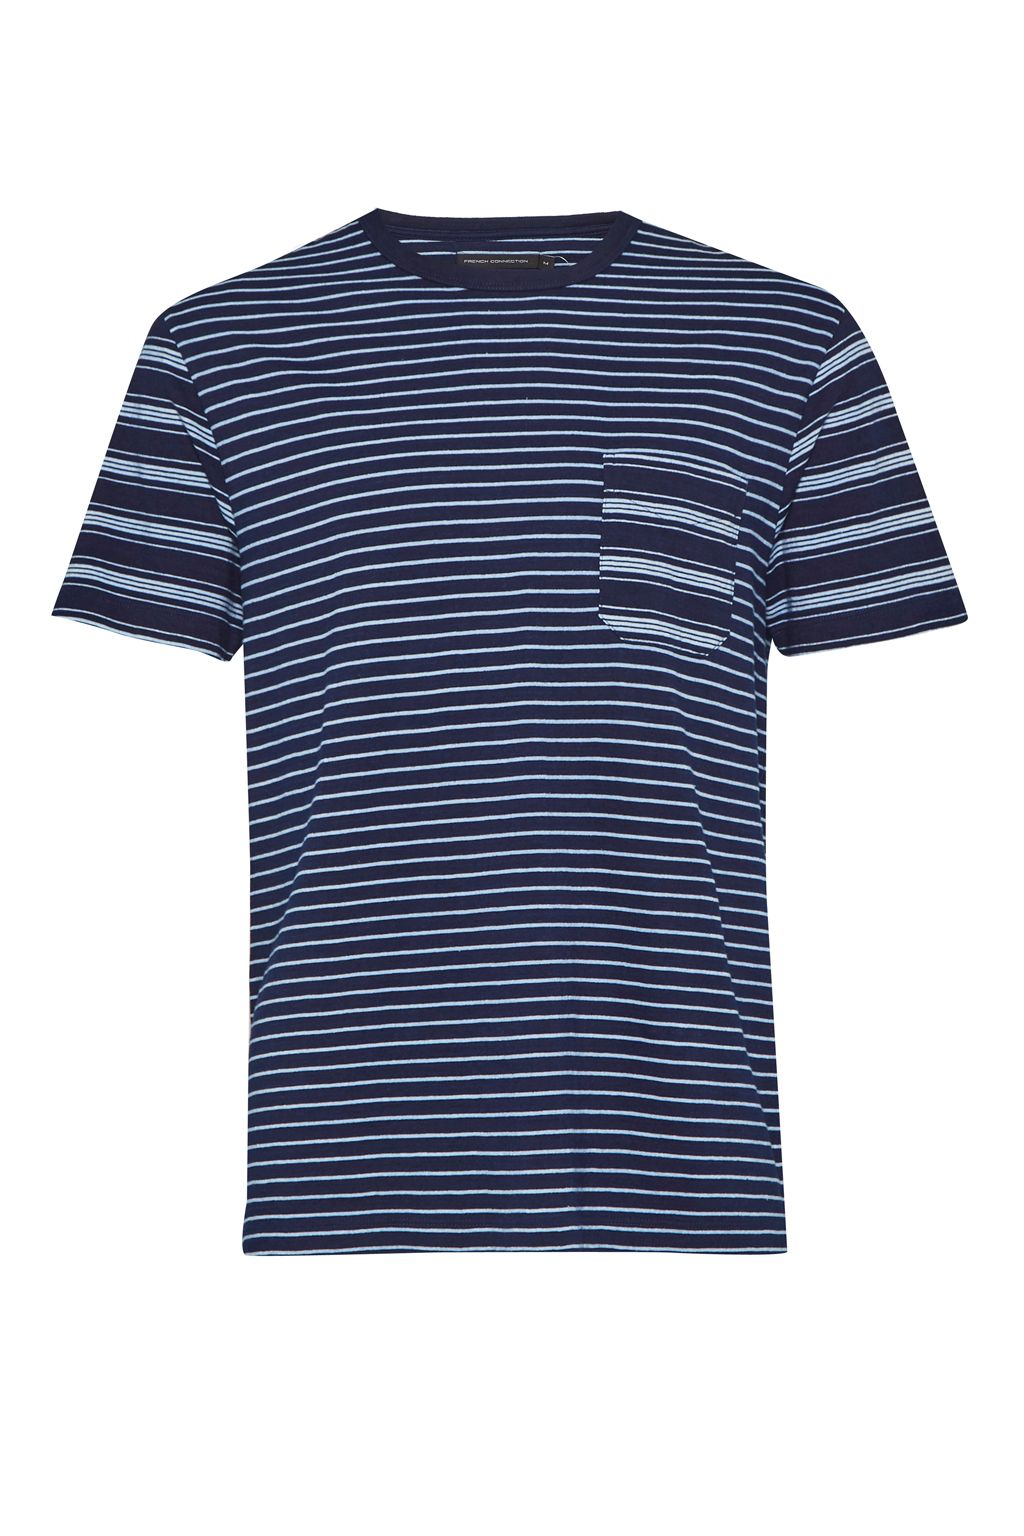 Men's French Connection Block Patchwork Indigo Striped T-Shirt, Denim Rinse